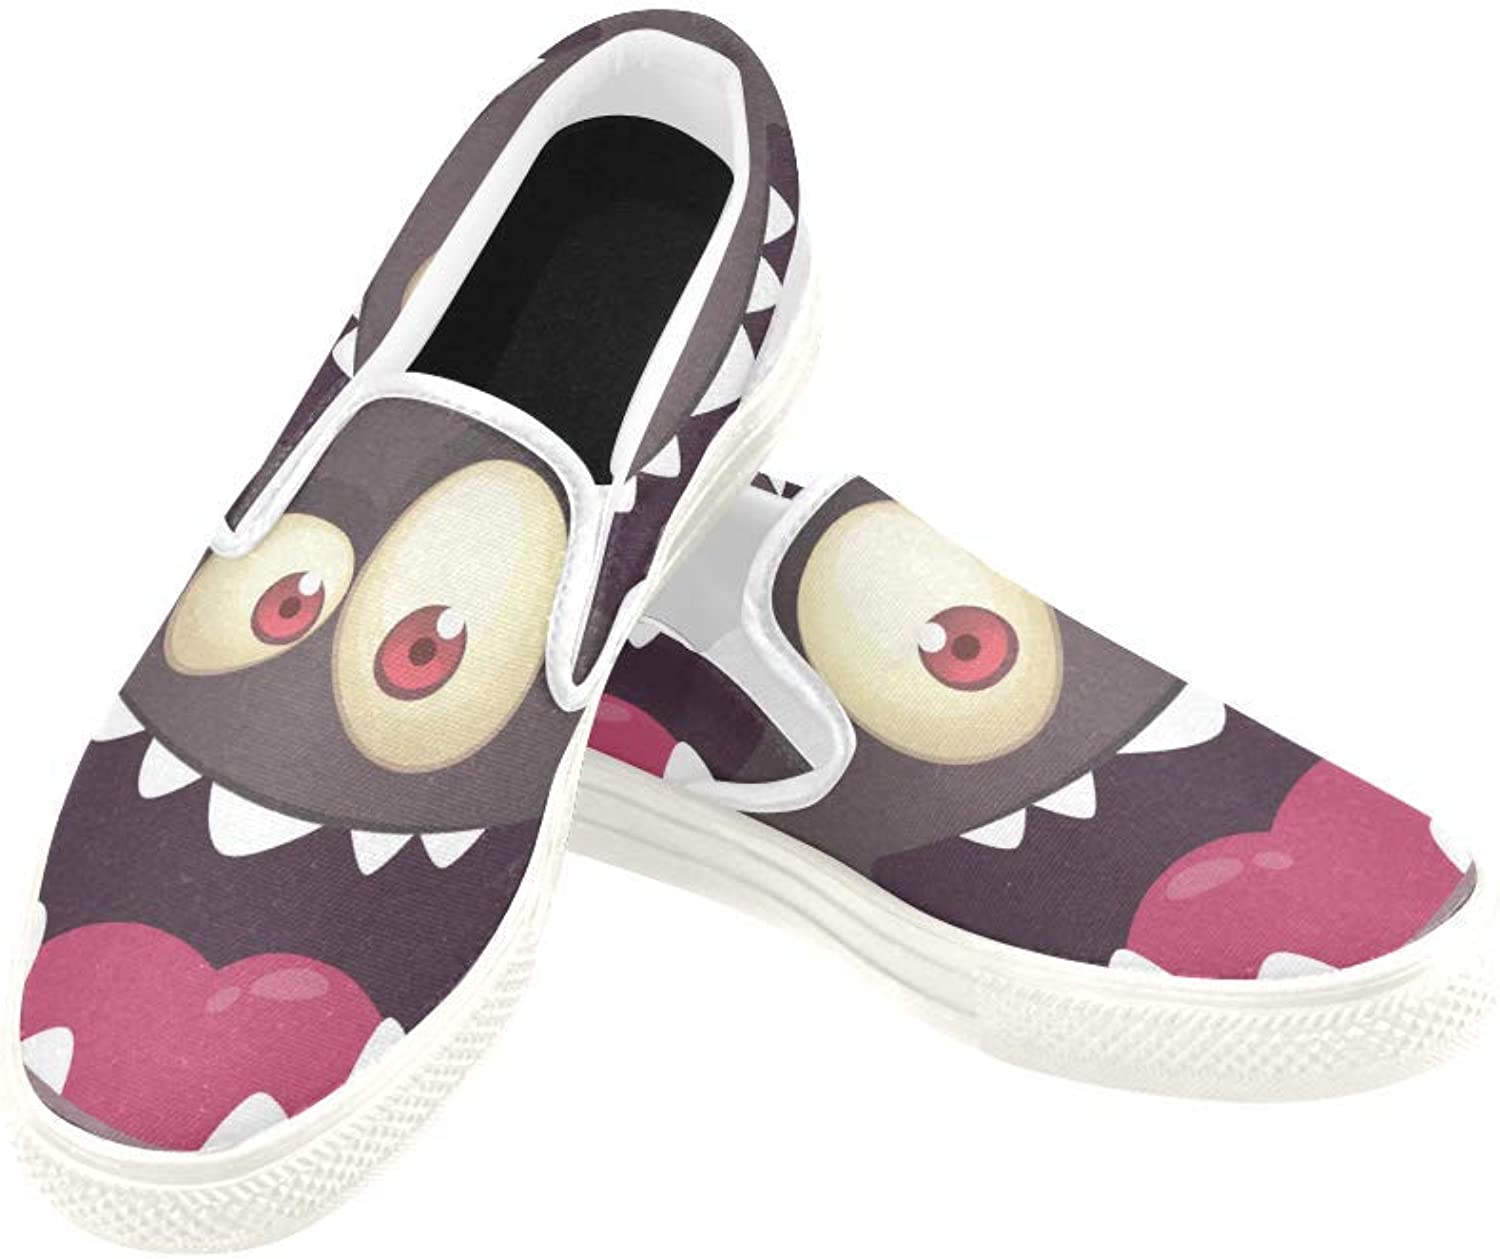 InterestPrint Womens Slip On Canvas shoes Loafers Cool Monster Face Girls Classic Casual Sneakers Flats